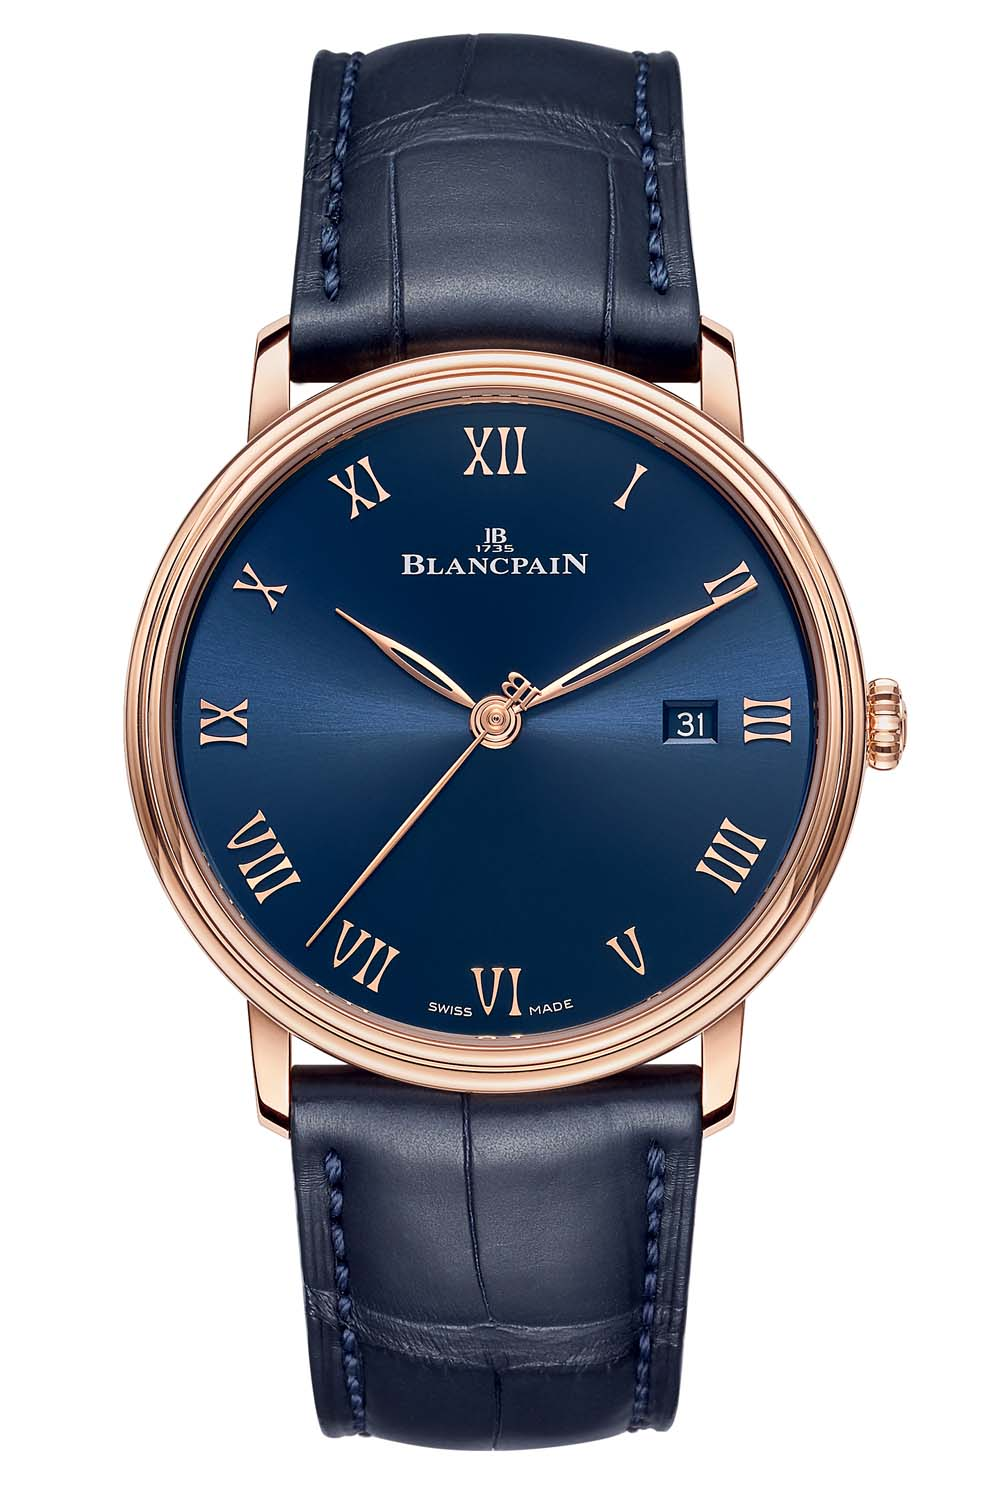 Blancpain Villeret Ultraplate 6651 Red Gold Blue Dial